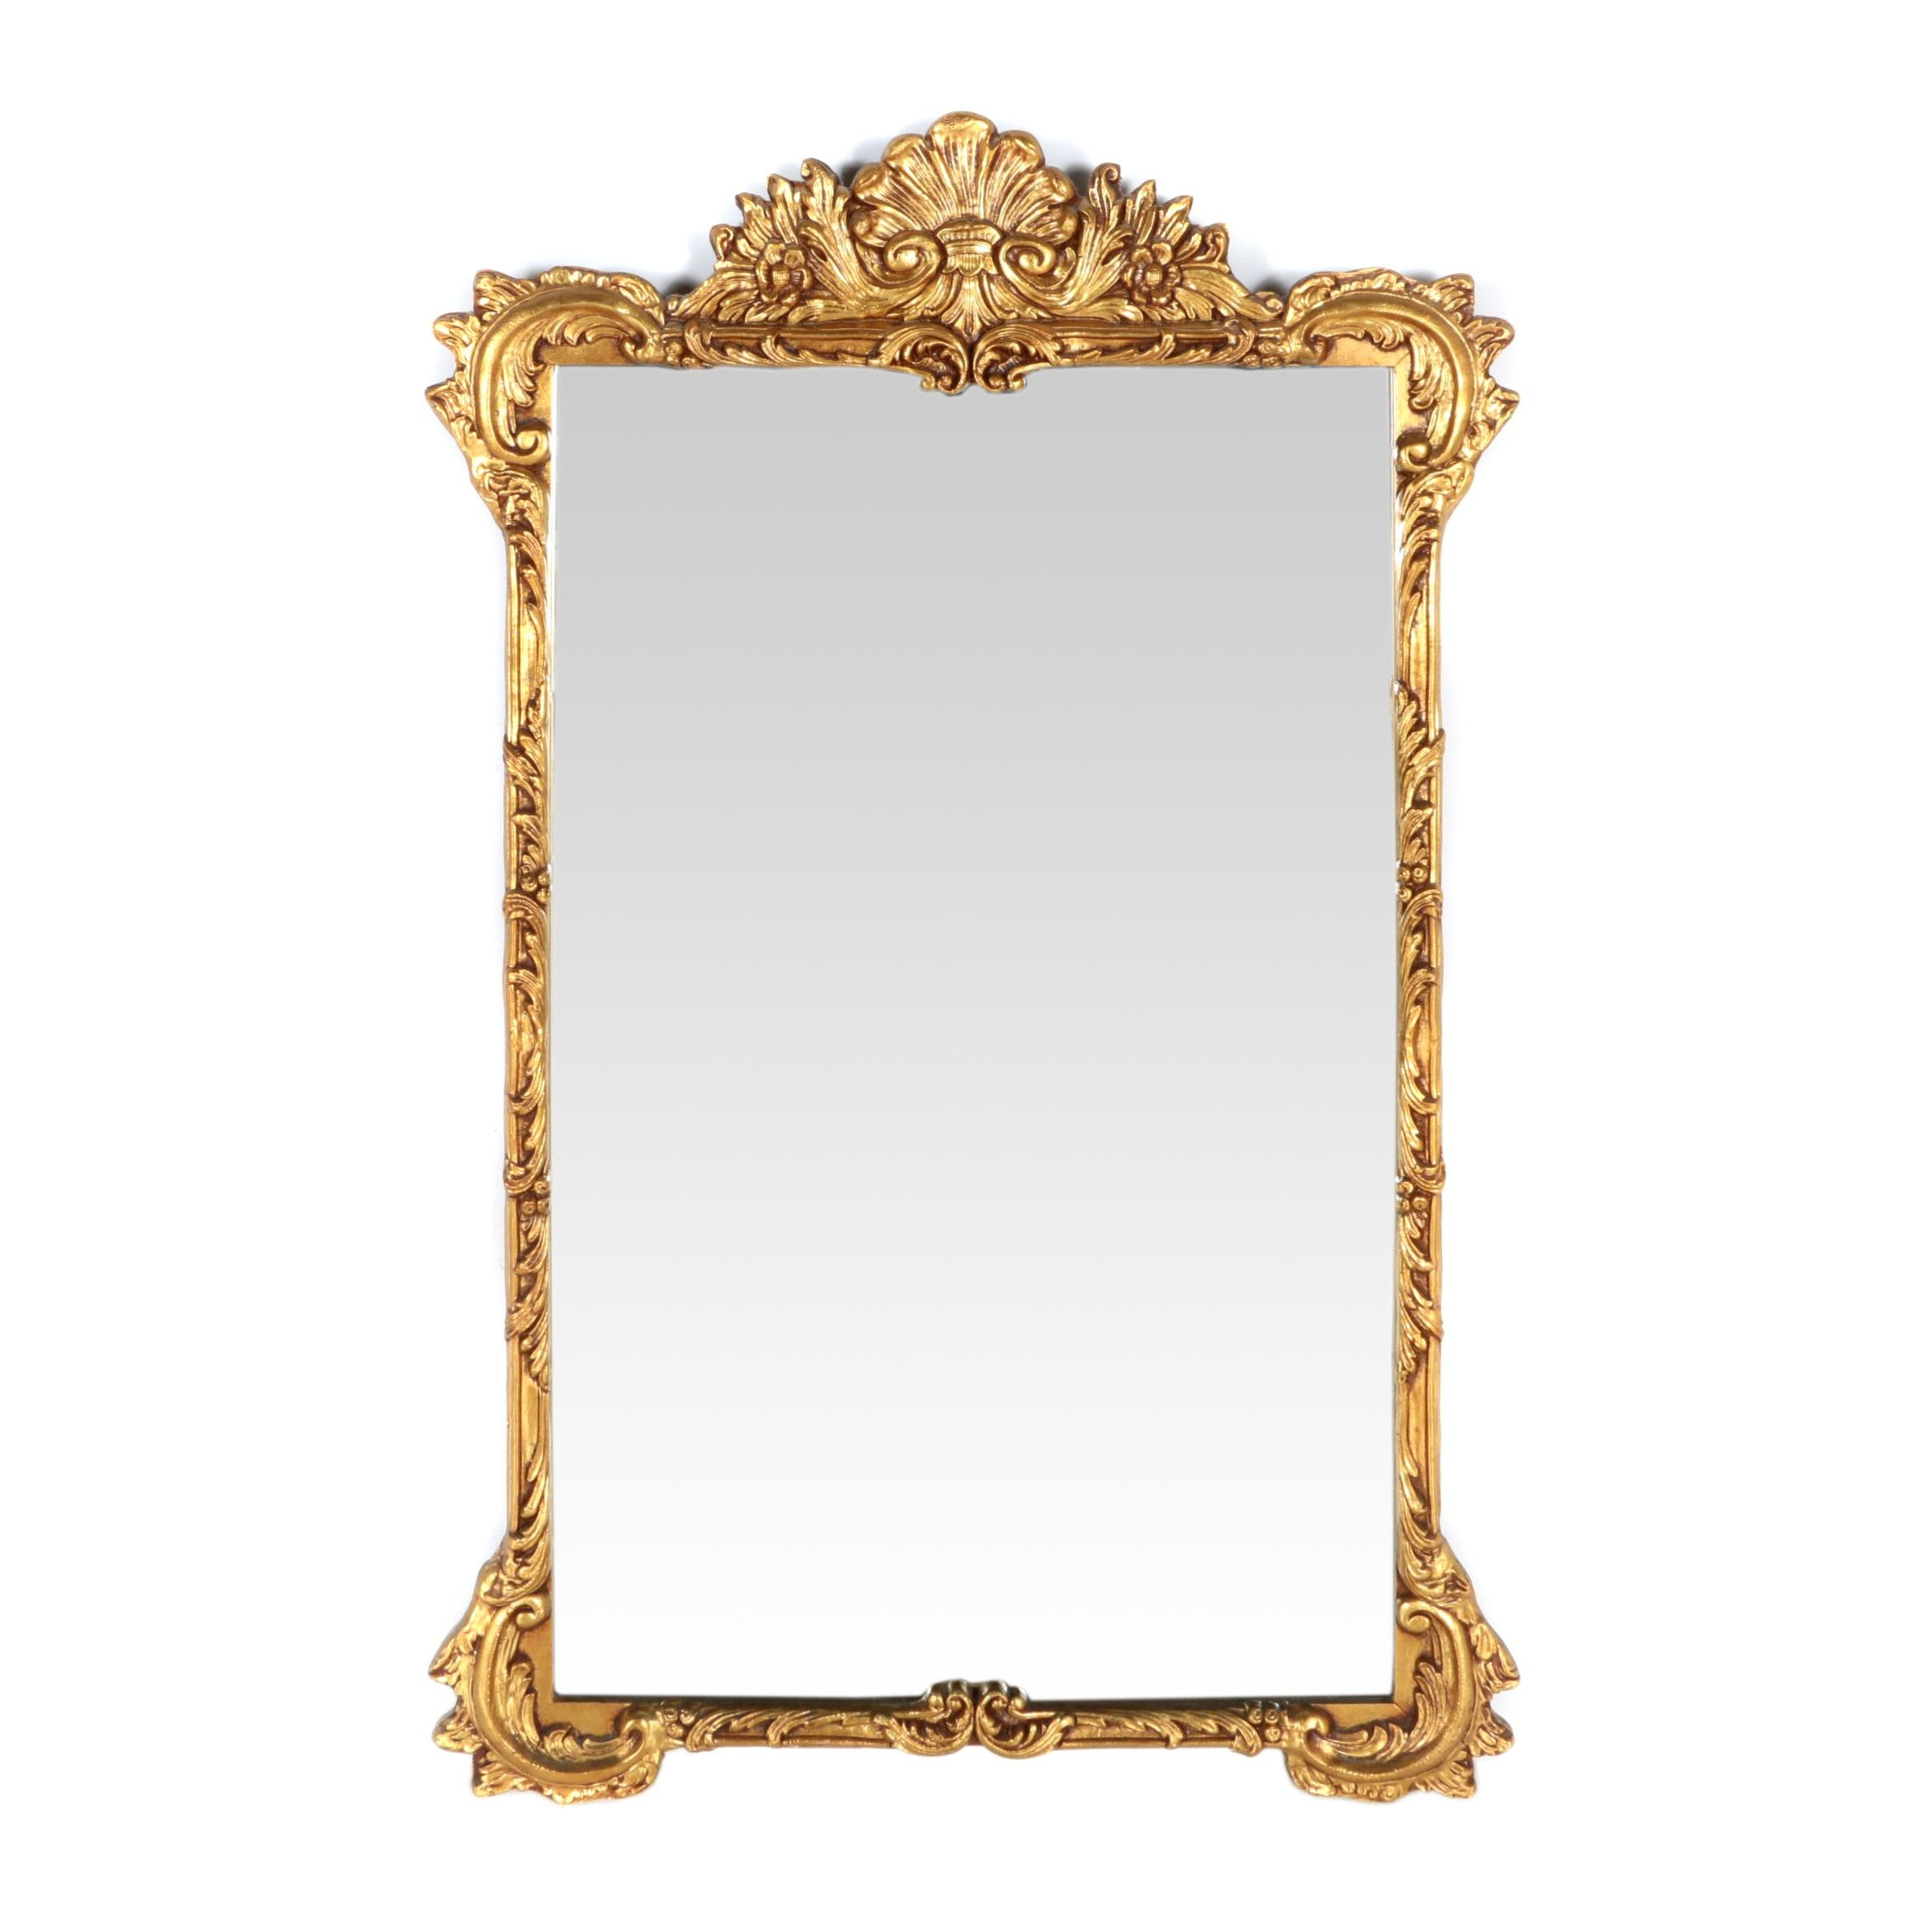 Gold Tone Wooden Wall Mirror